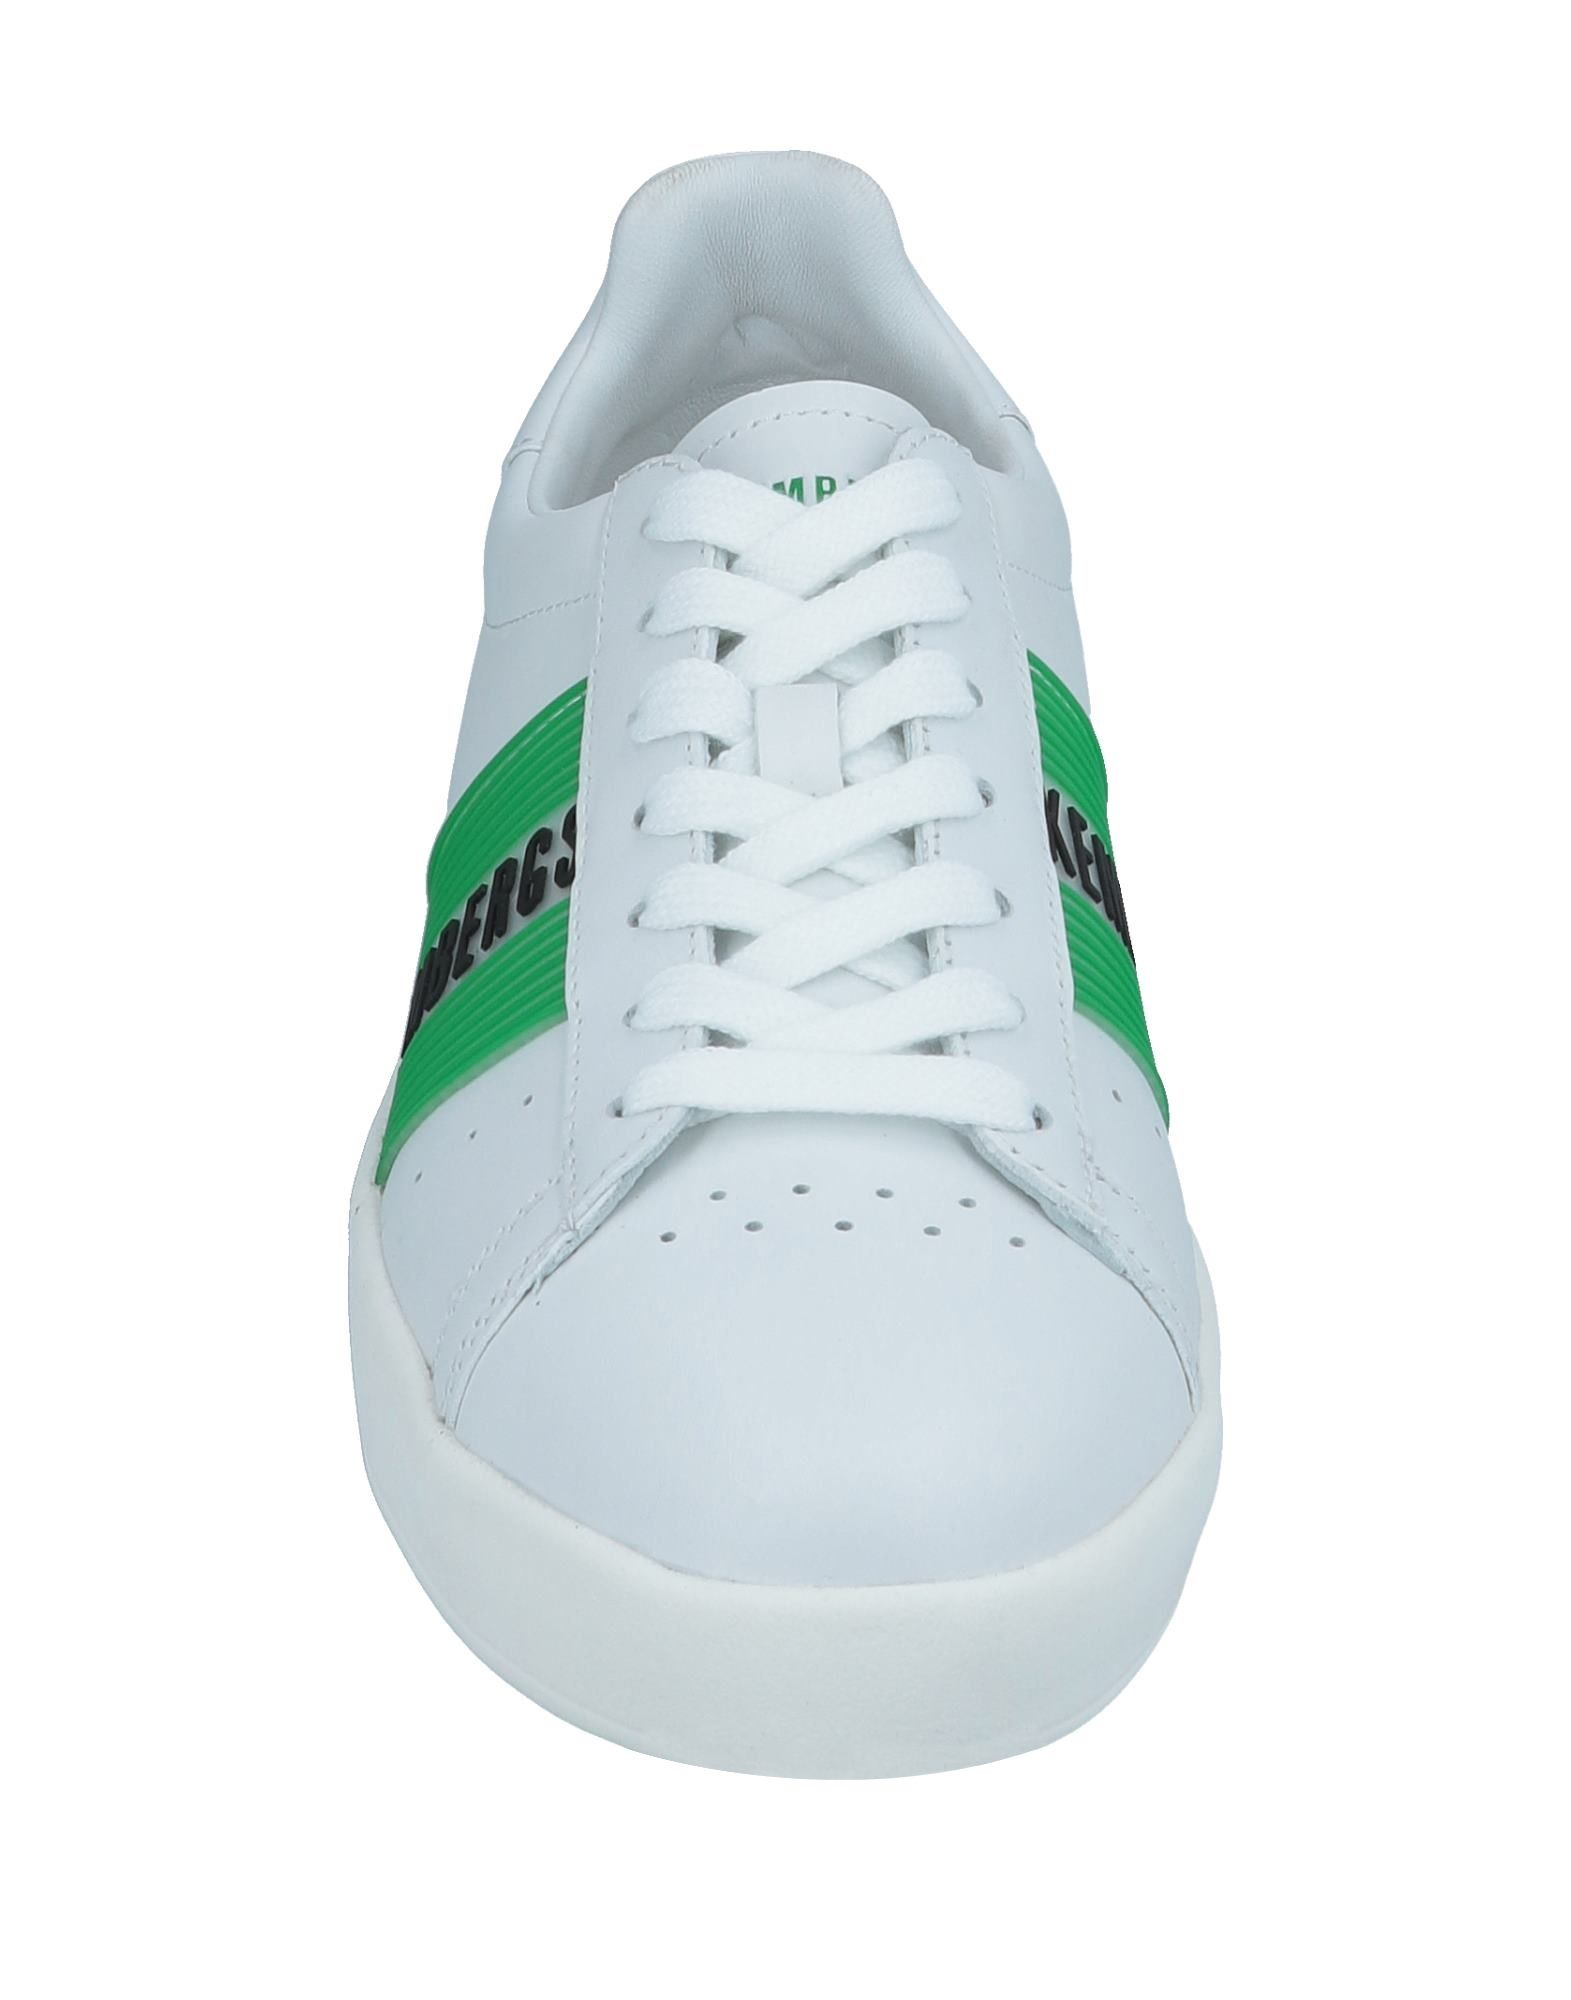 Bikkembergs Sneakers Sneakers Sneakers - Men Bikkembergs Sneakers online on  United Kingdom - 11569200PX efb8f9